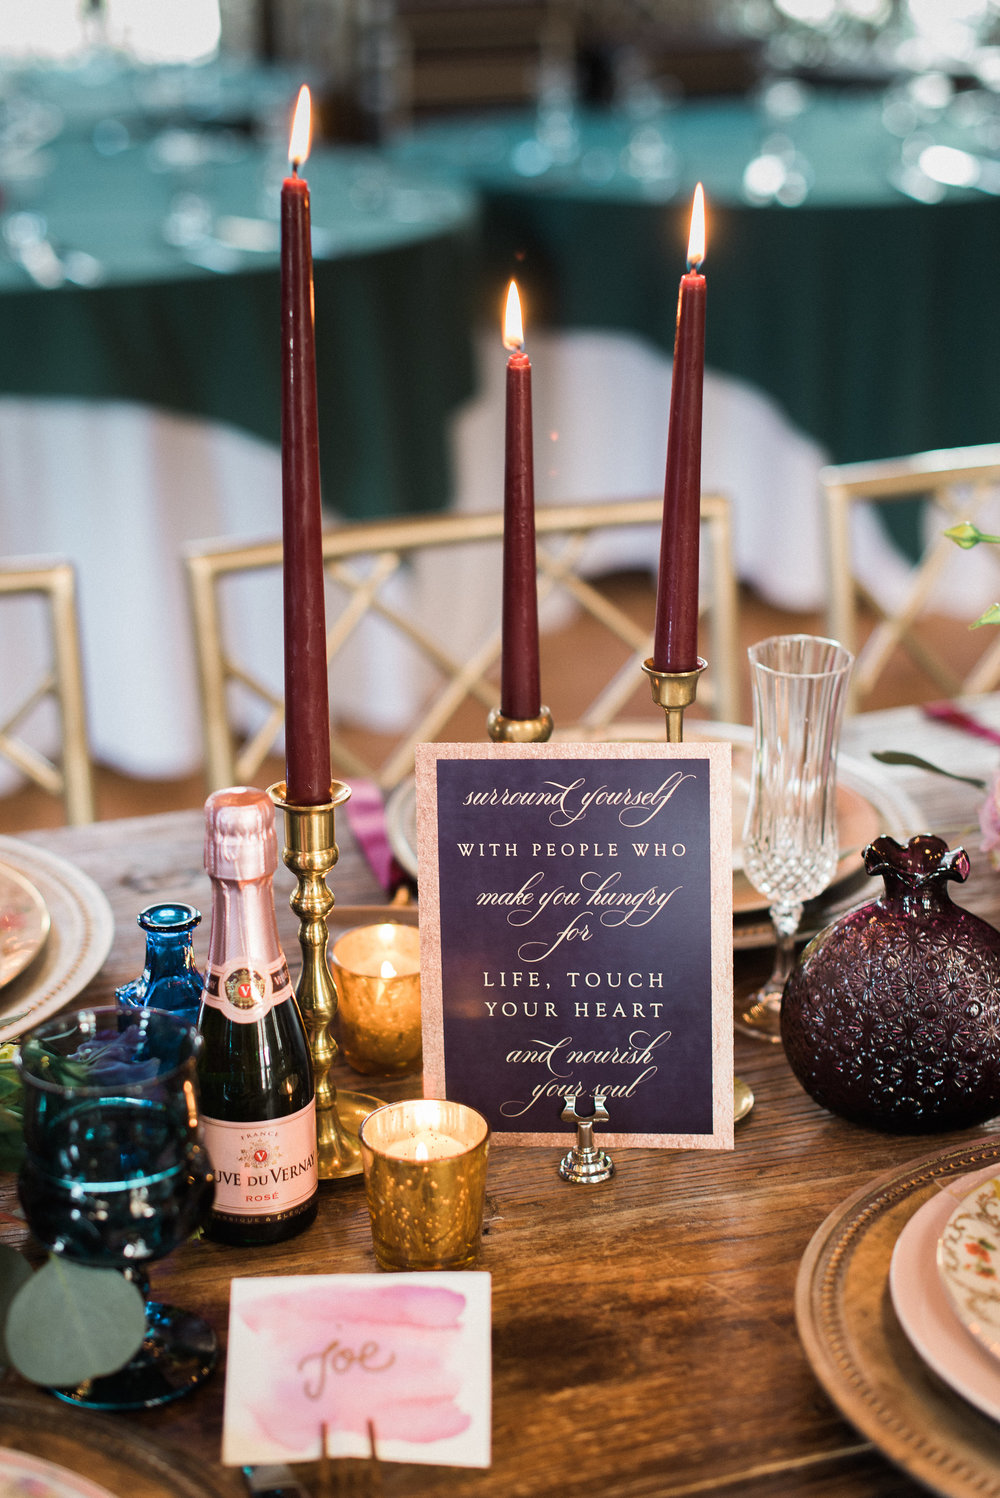 Stationery by Whimsy B Paperie | Watercolor Place Card by Bonnie Bryant Creative | Event Styling by Eventful Days | Vintage tableware by Early Bird Vintage | Flowers by Sugar Magnolias Flowers | Venue is the Old Field Club | Rosé courtesy of Allison Cohen/Opici Wines